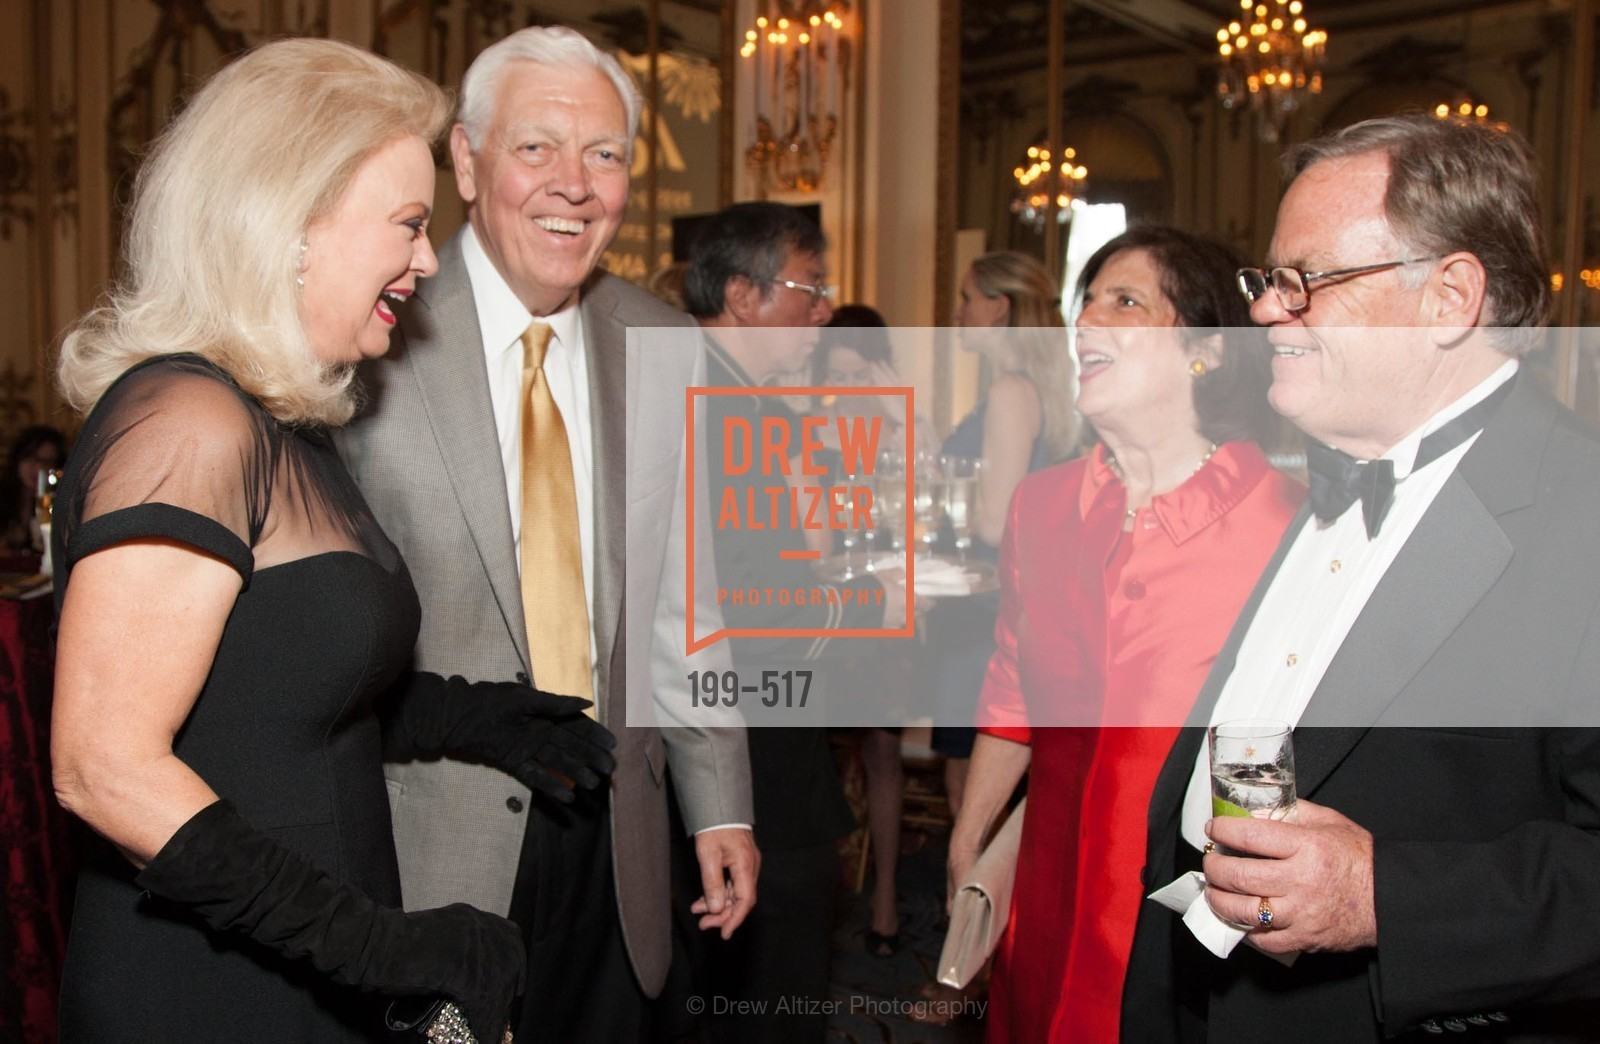 Chandra Friese, Bob Friese, Rusty Holden, Roberta Holden, SAN FRANCISCO OPERA GUILD Presents POPera, US. US, April 10th, 2014,Drew Altizer, Drew Altizer Photography, full-service agency, private events, San Francisco photographer, photographer california